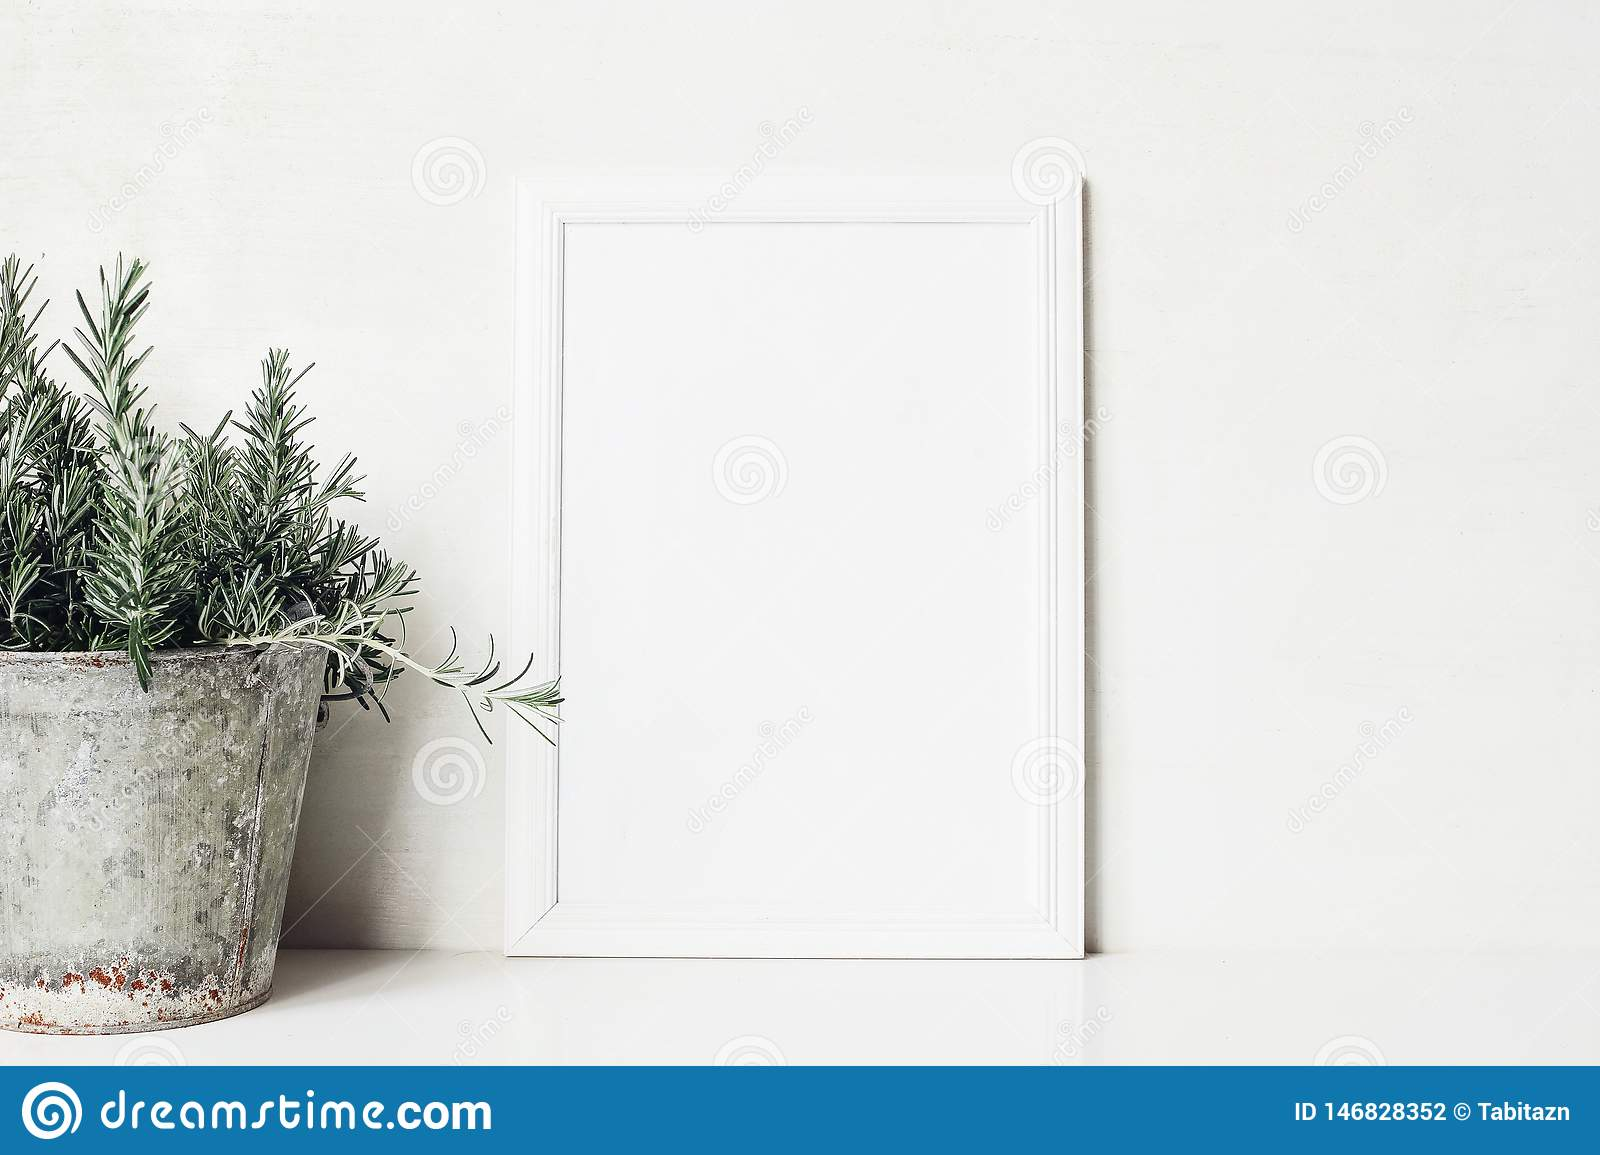 White vertical blank wooden frame mockup with rosemary herb in old metal flower pot on the table. Rustic summer poster